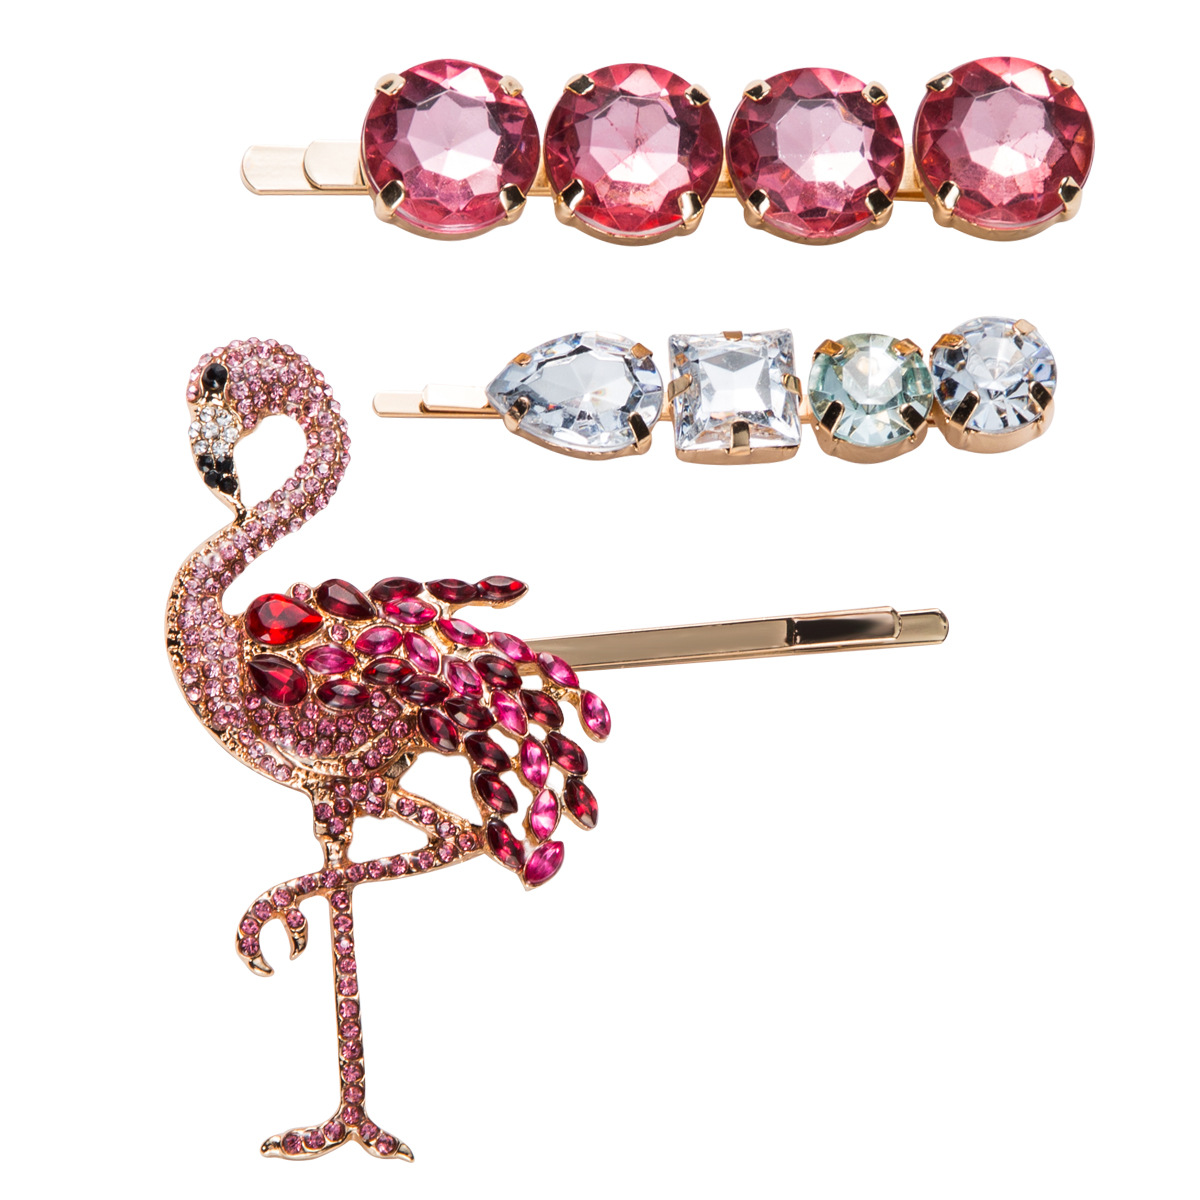 WENZHE New Crystal Flamingo Hair Pins Sets for Women Girls Colorful Hair Jewelry Barrette Animal rhinestone Hair Clip Featured Image